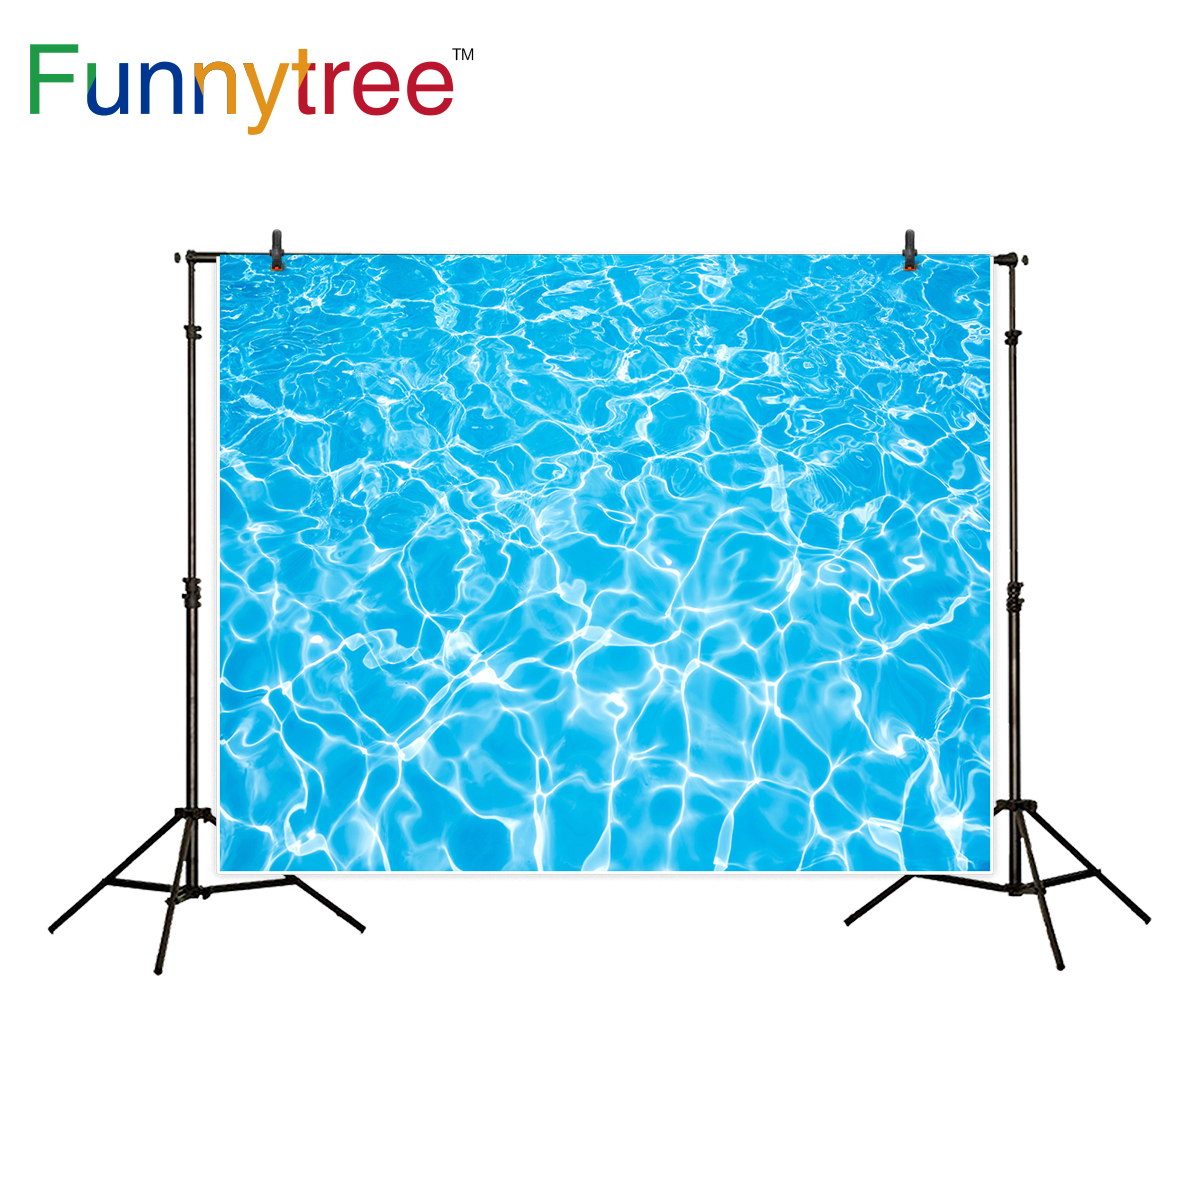 Funnytree background for photo studio swimming pool summer cool baby shower blue backdrop photography photobooth photo prop